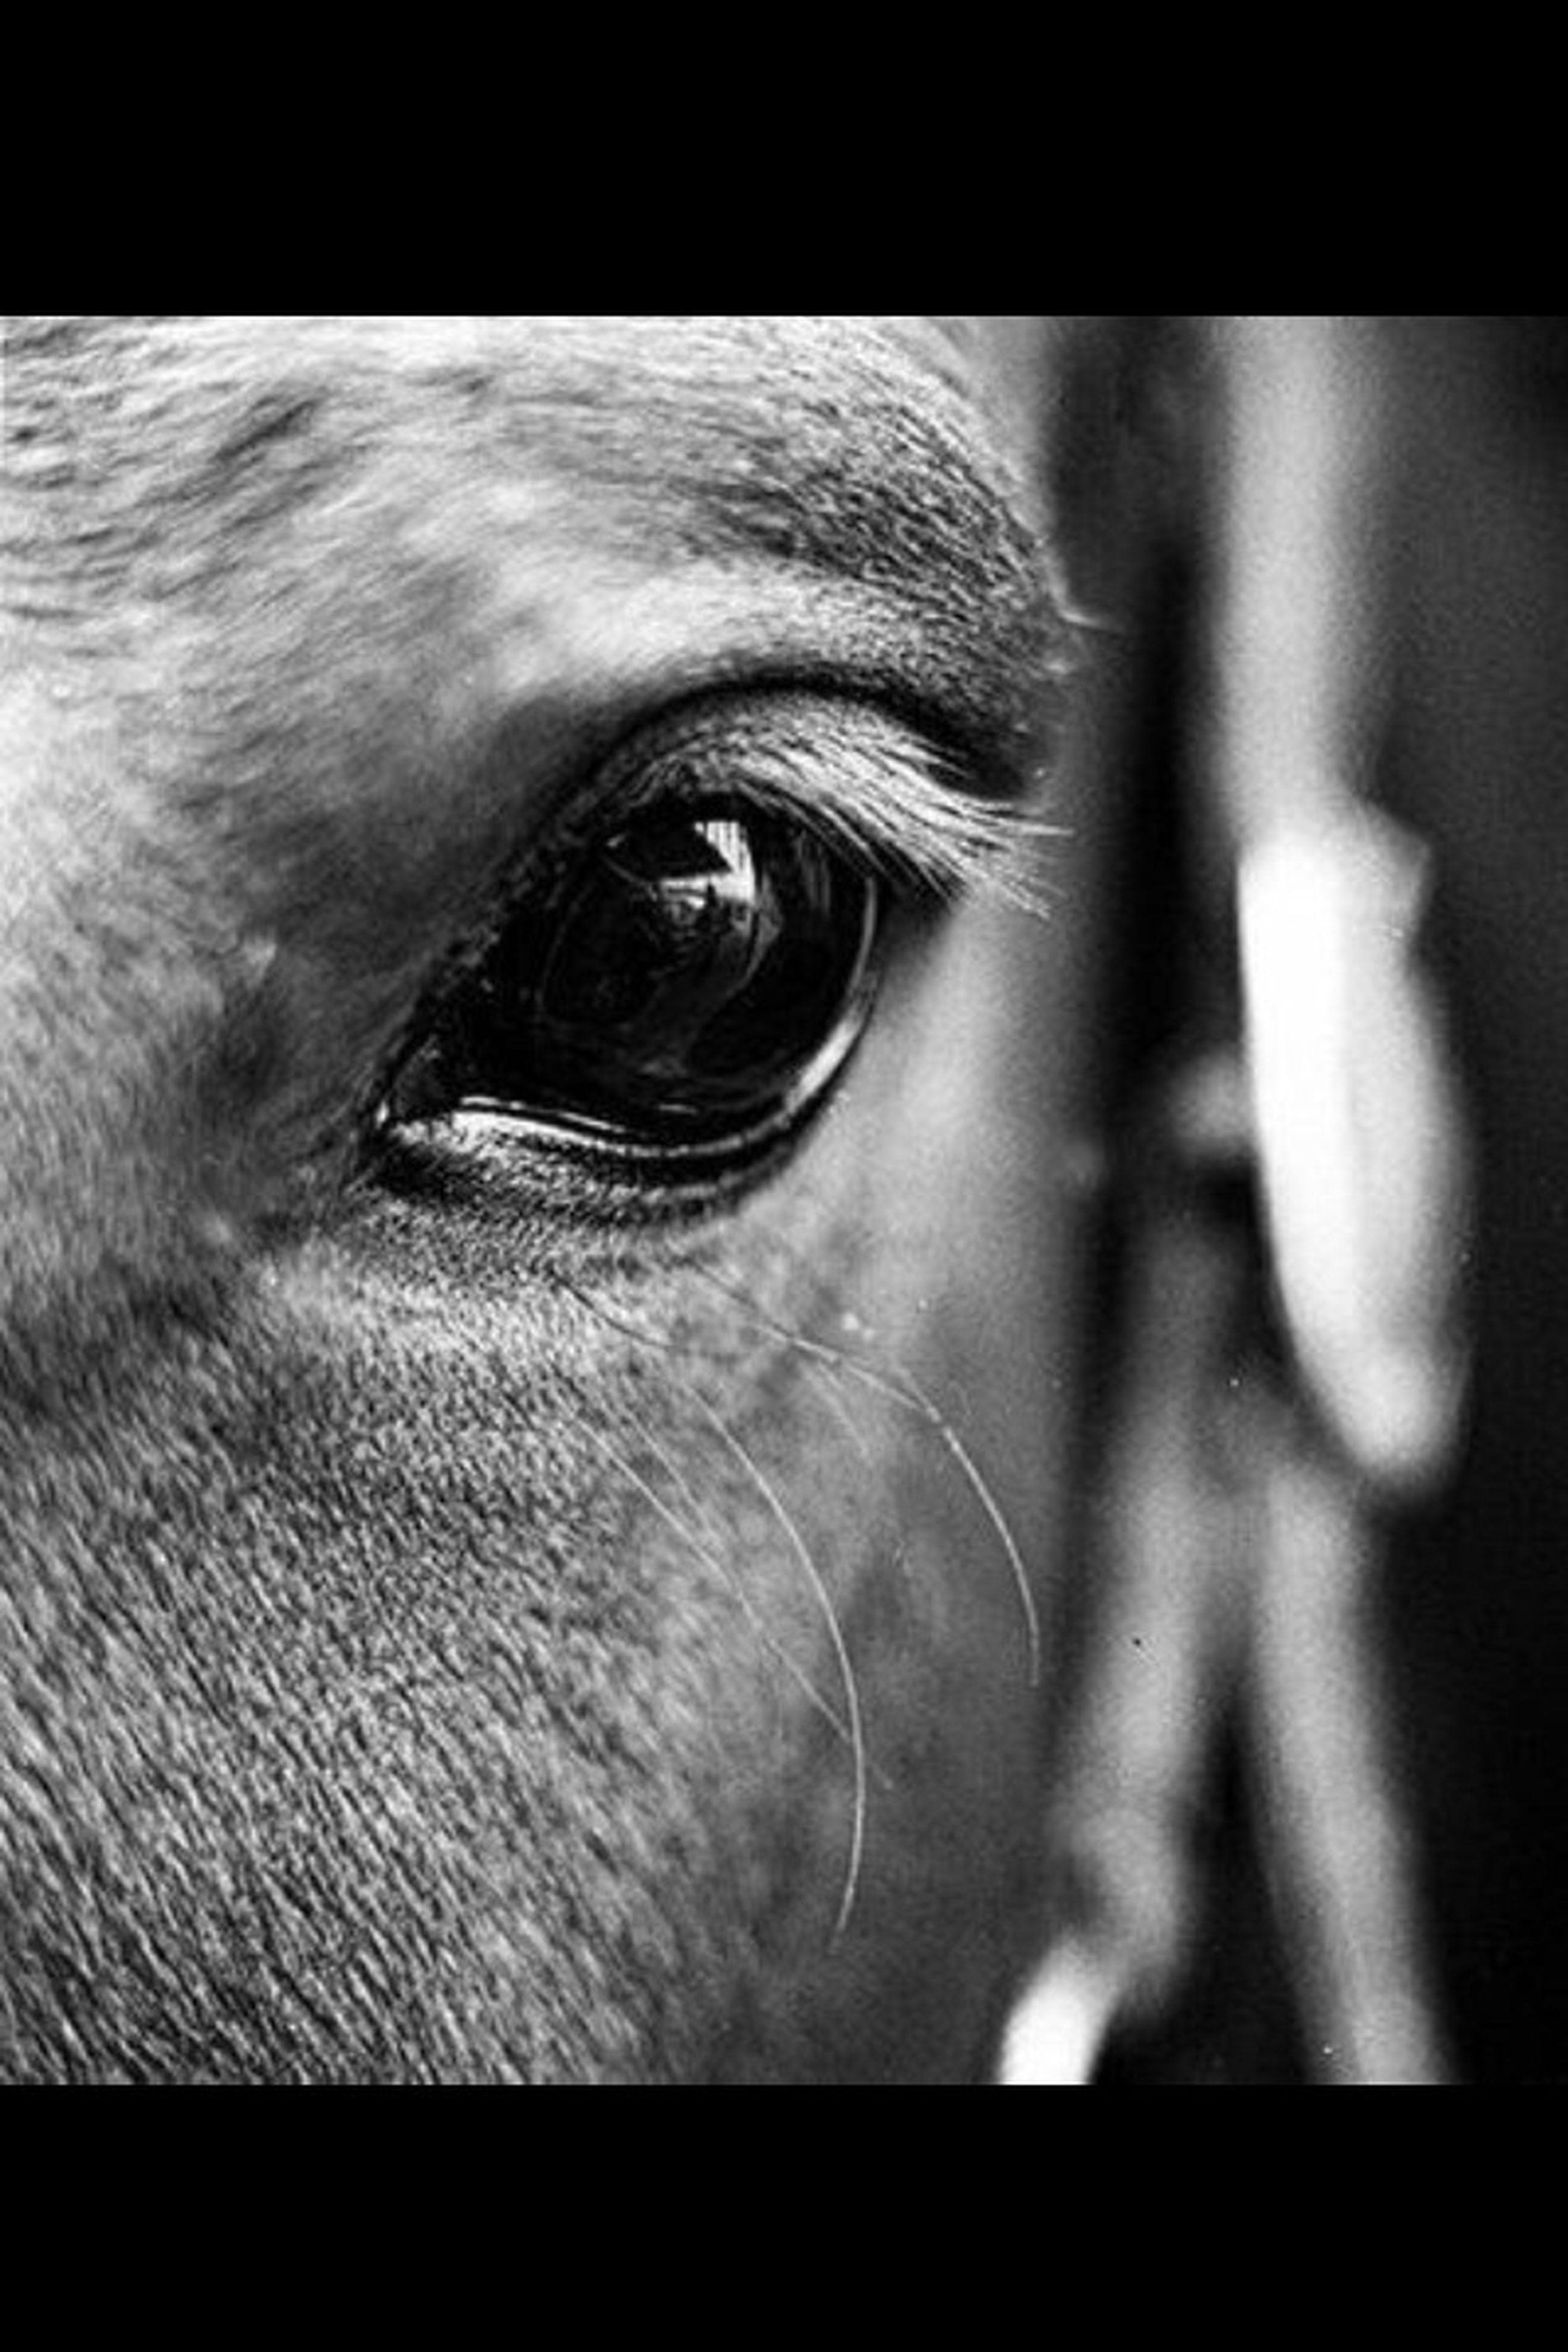 close-up, one animal, part of, animal themes, animal body part, animal head, transfer print, animal eye, auto post production filter, indoors, detail, extreme close up, selective focus, focus on foreground, human eye, extreme close-up, front view